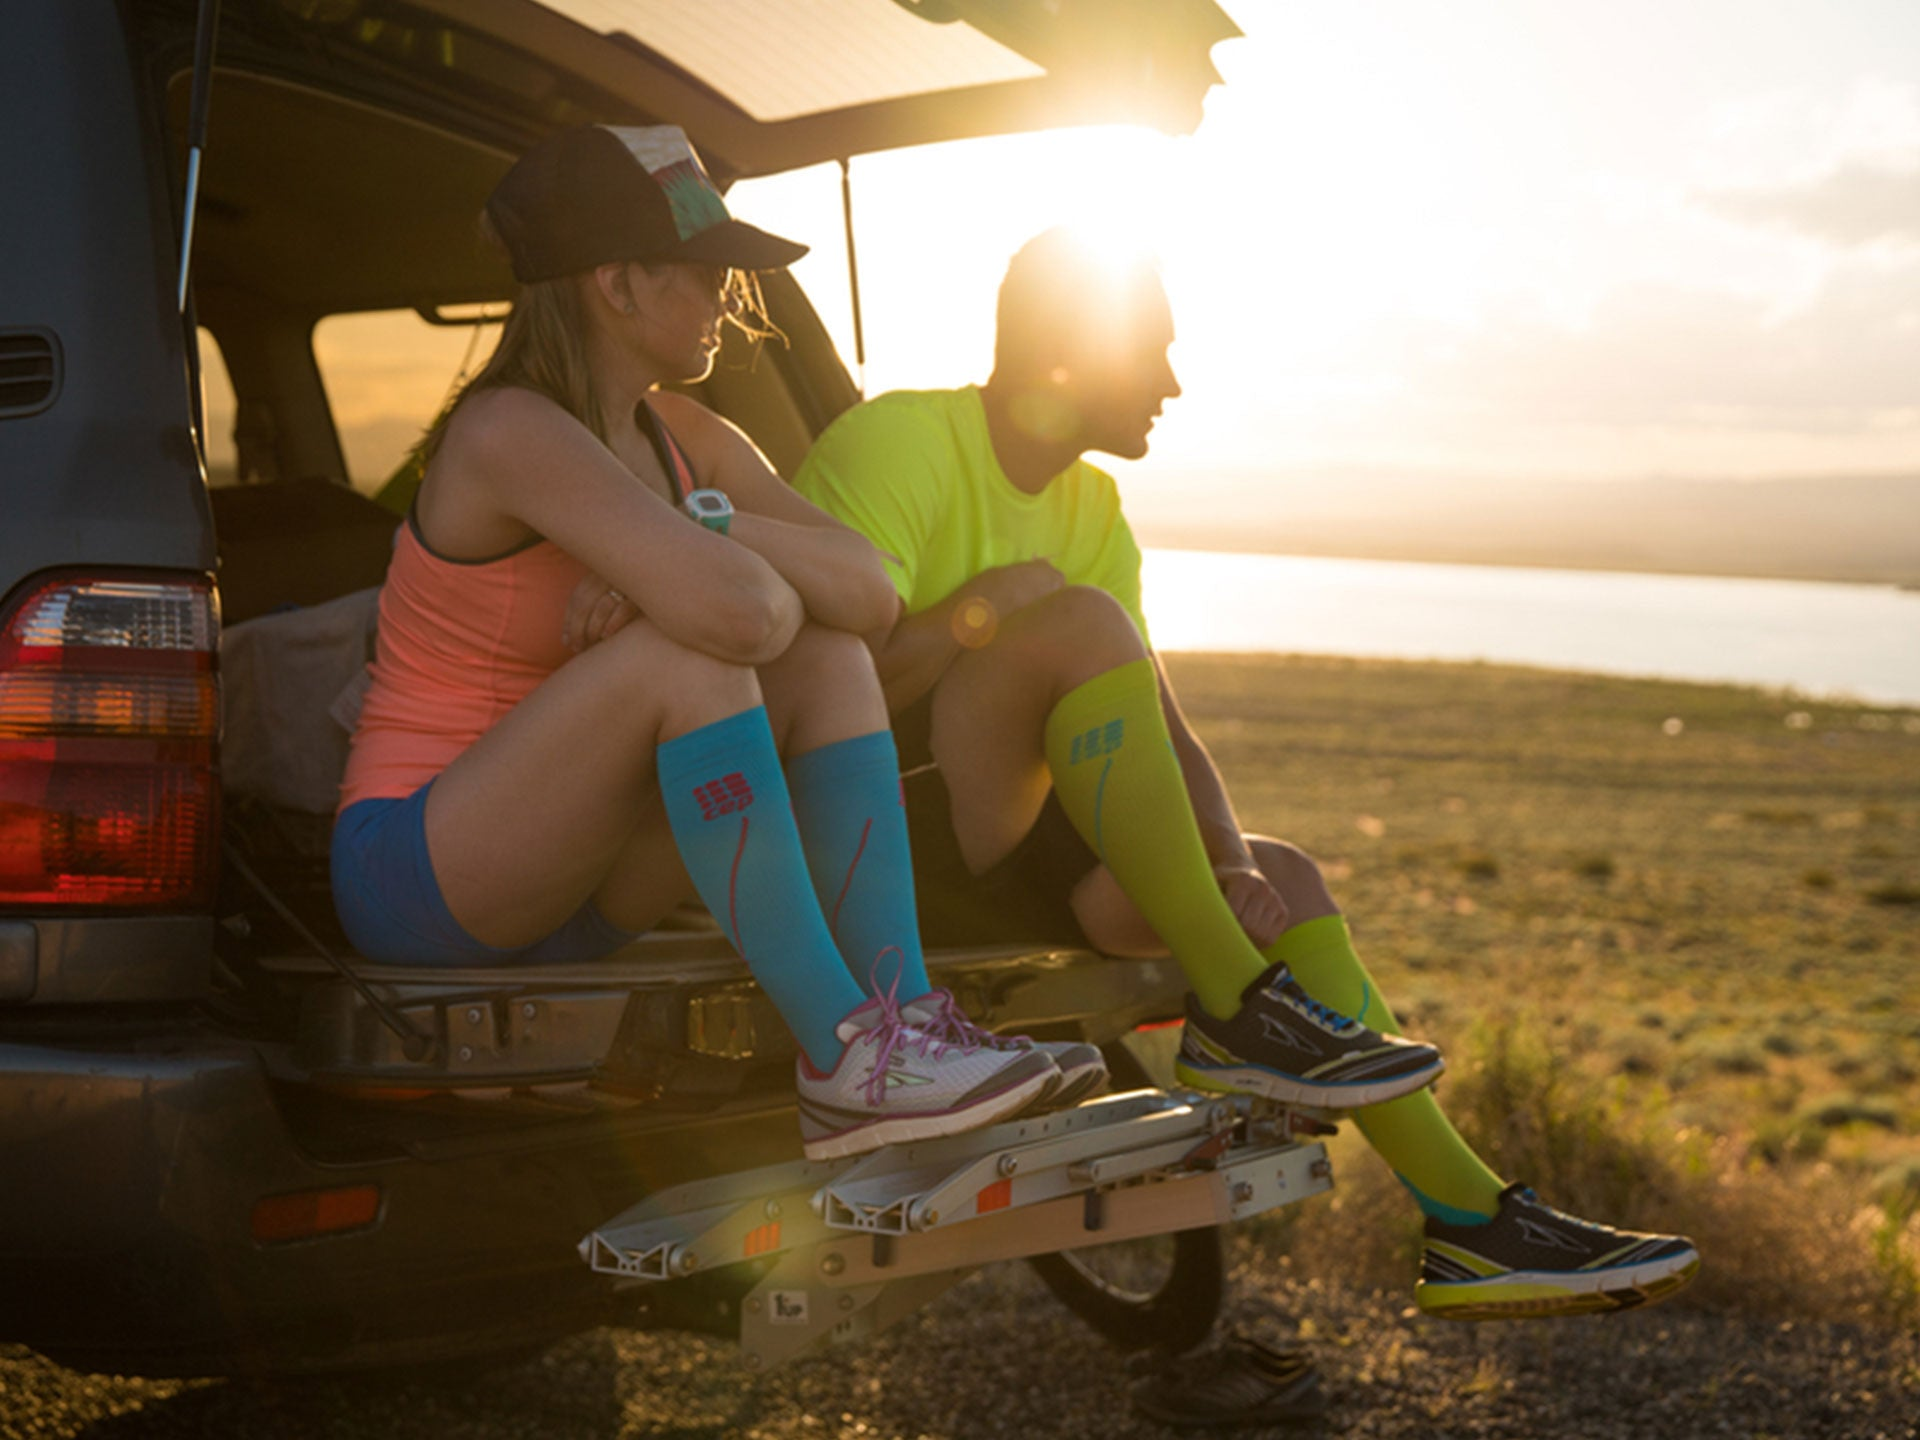 Sports Compression Socks with high tech fiber blends and designs